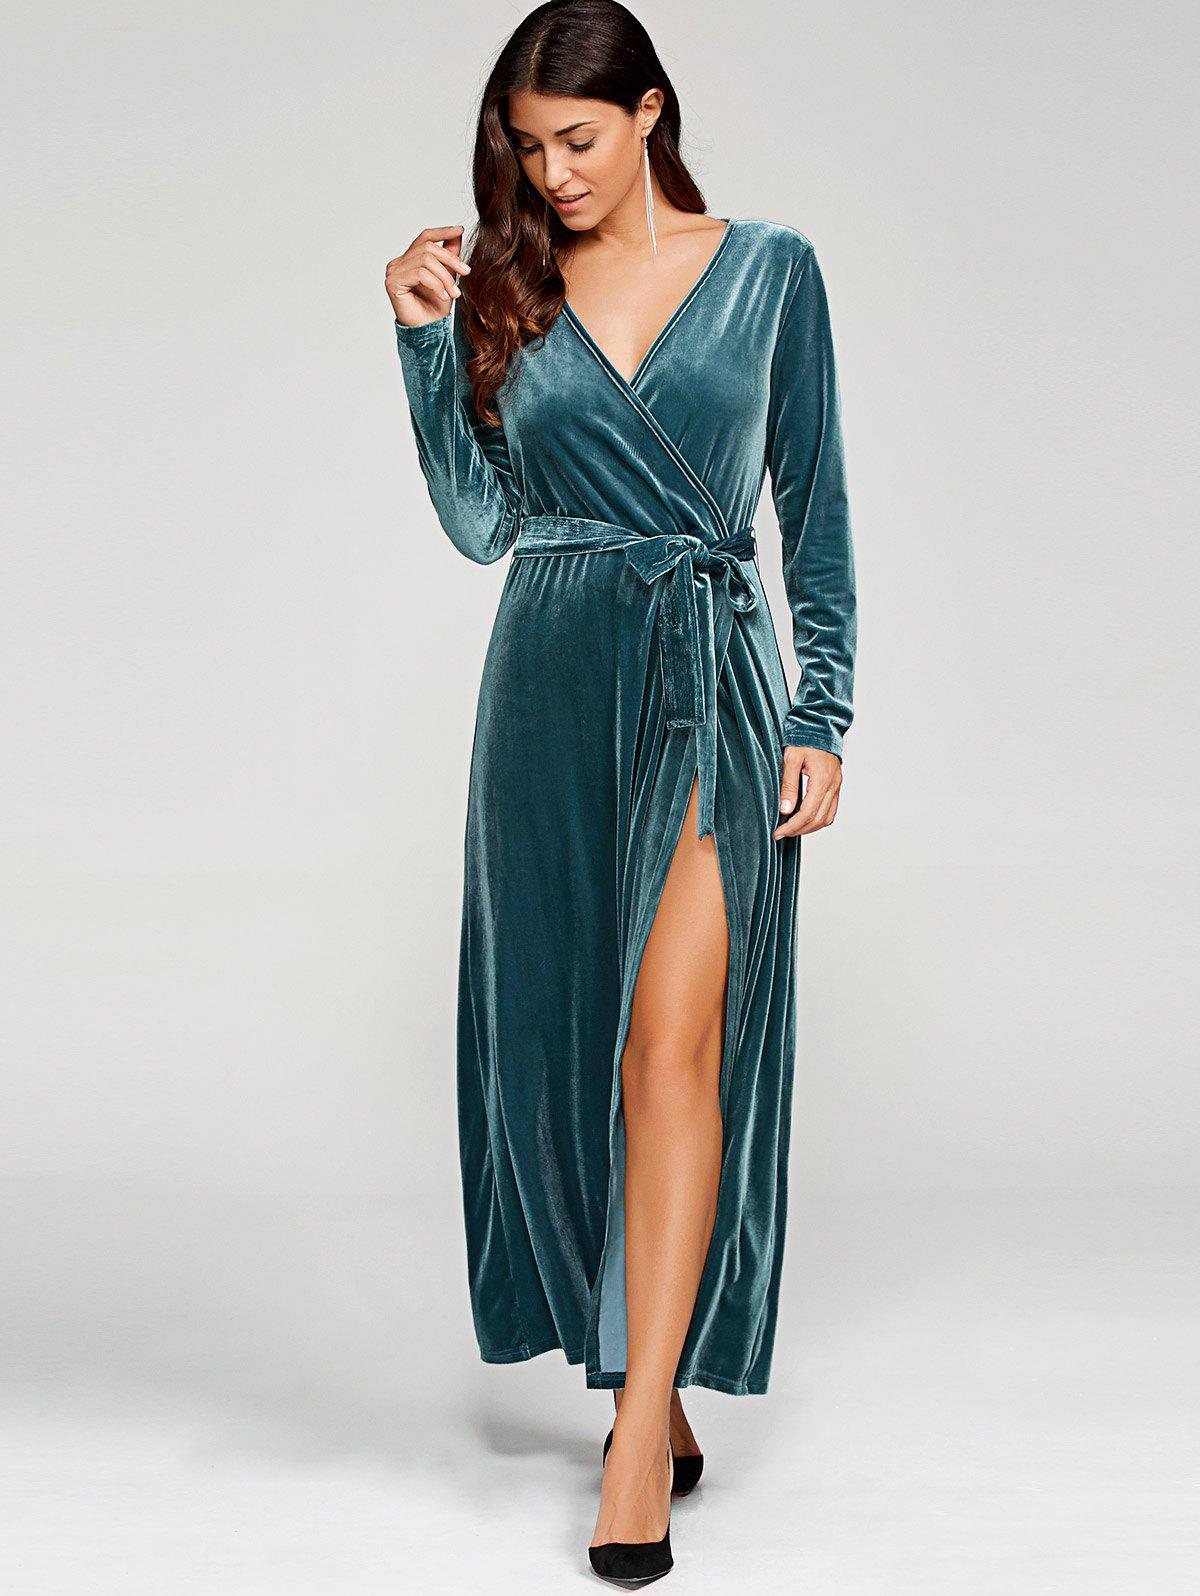 83752374fdc21 2019 Long Sleeve Velvet Knot Wrap Maxi Dress